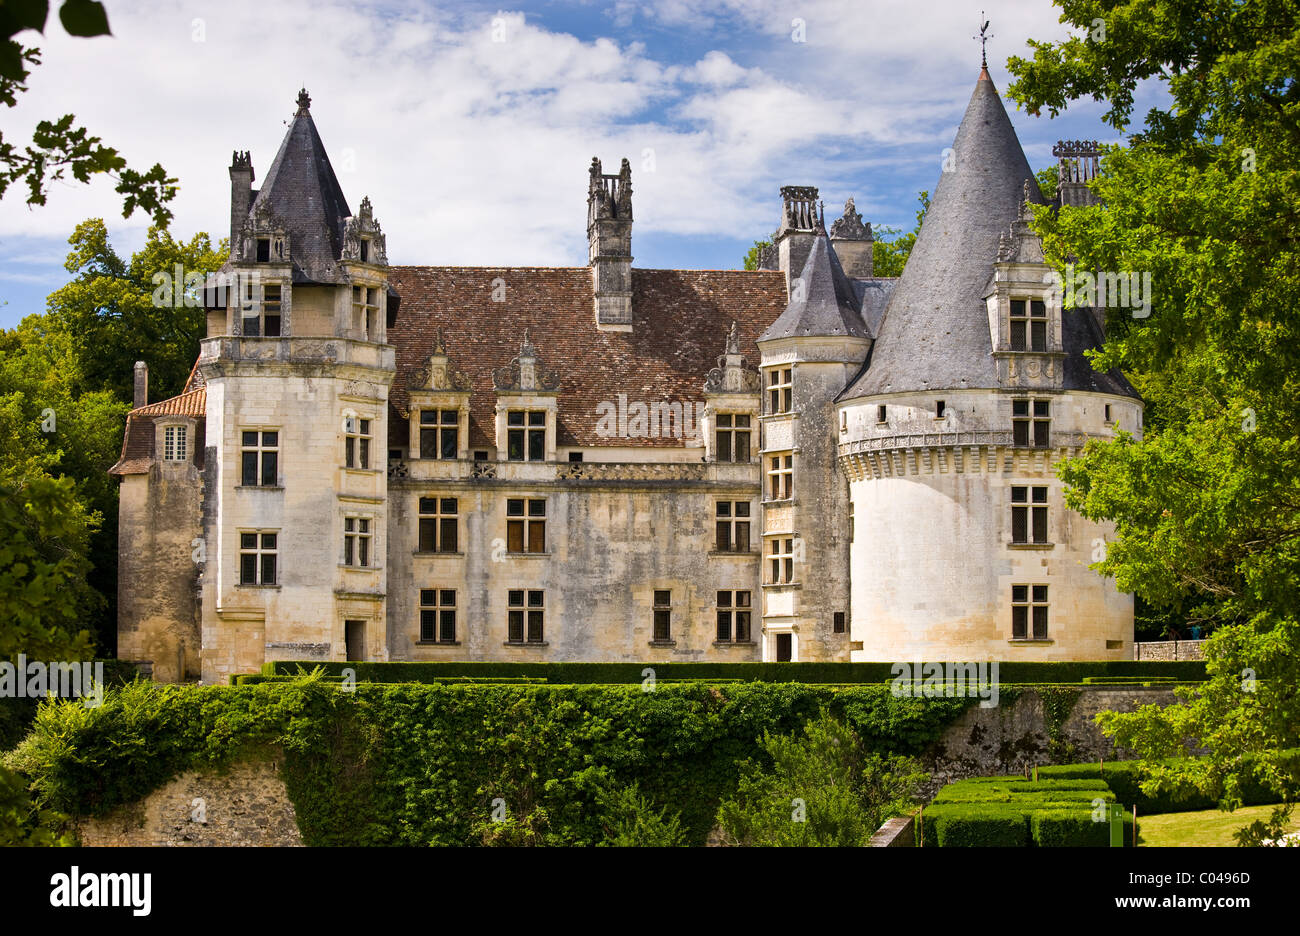 Chateau de Puyguilhem, 16th Century renaissance architecture near Villars, The Dordogne, France - Stock Image